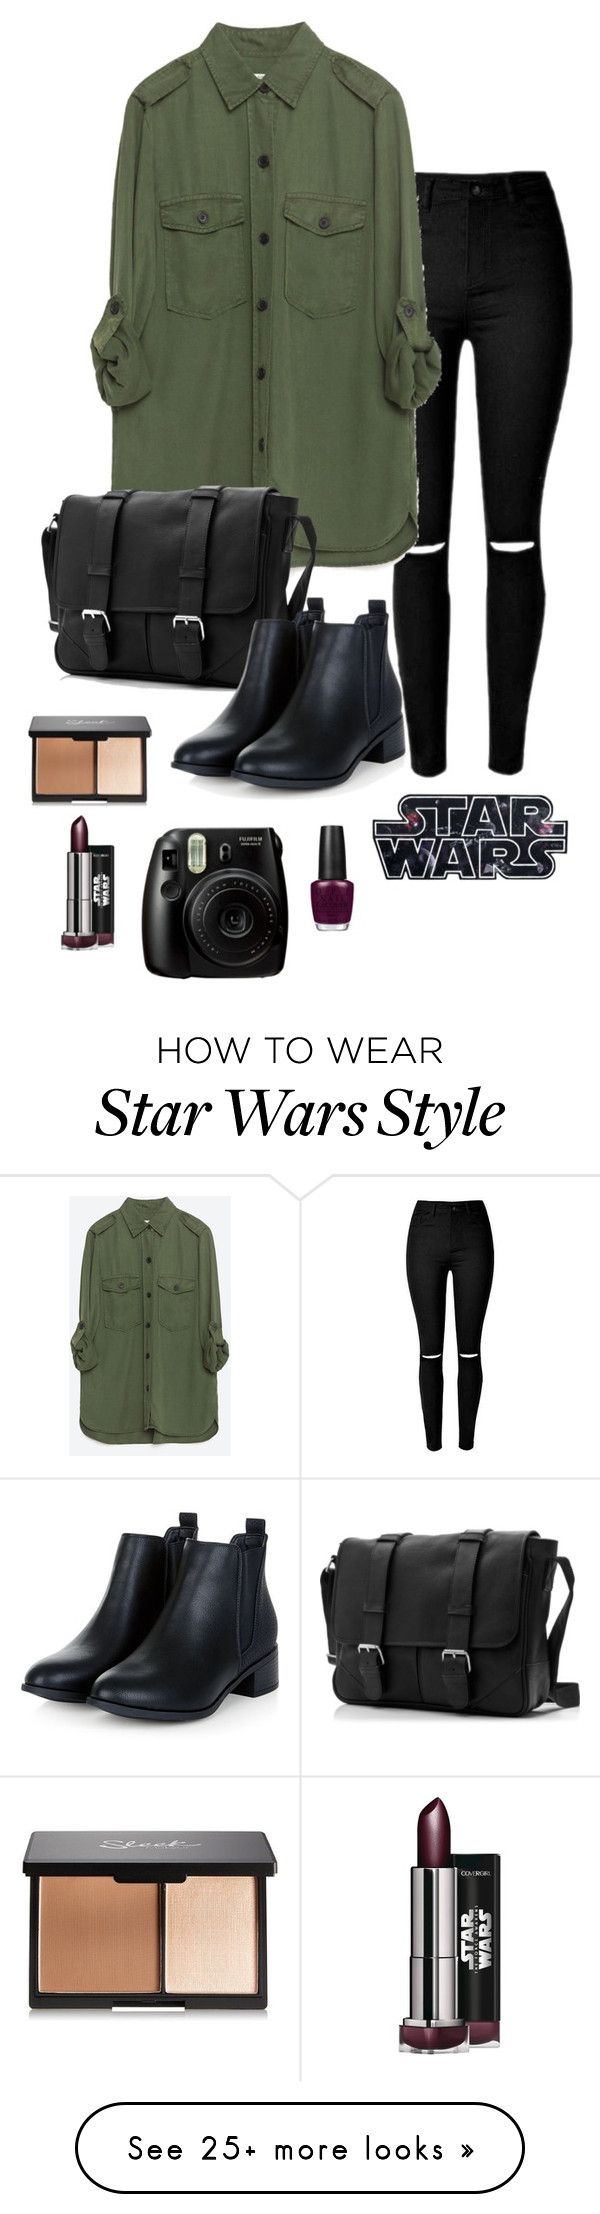 best moda images on pinterest fashion beauty casual wear and